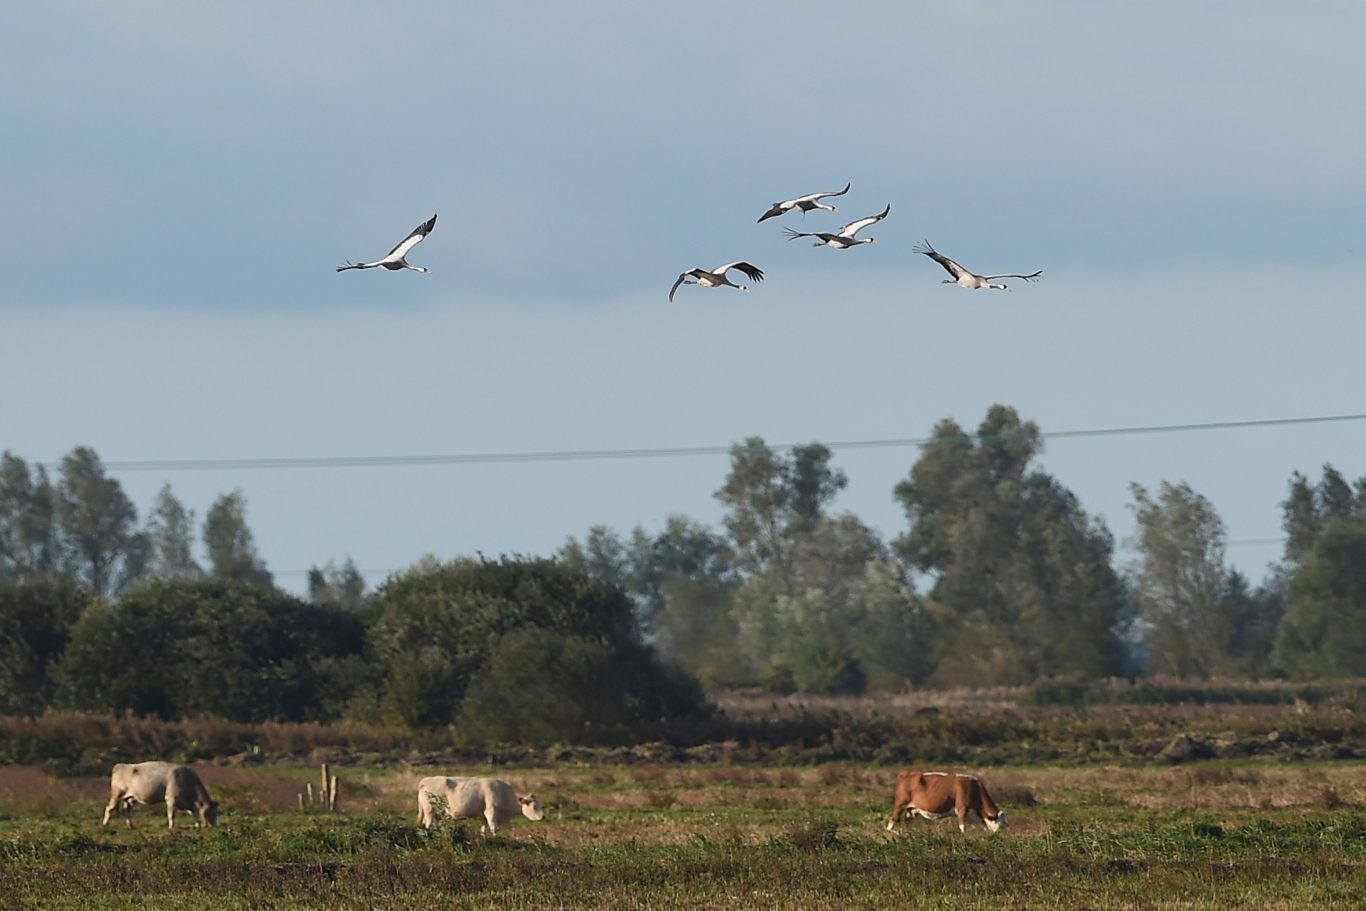 Five of the cranes flying over a herd of cows ( Joe Giddens/PA Wire)